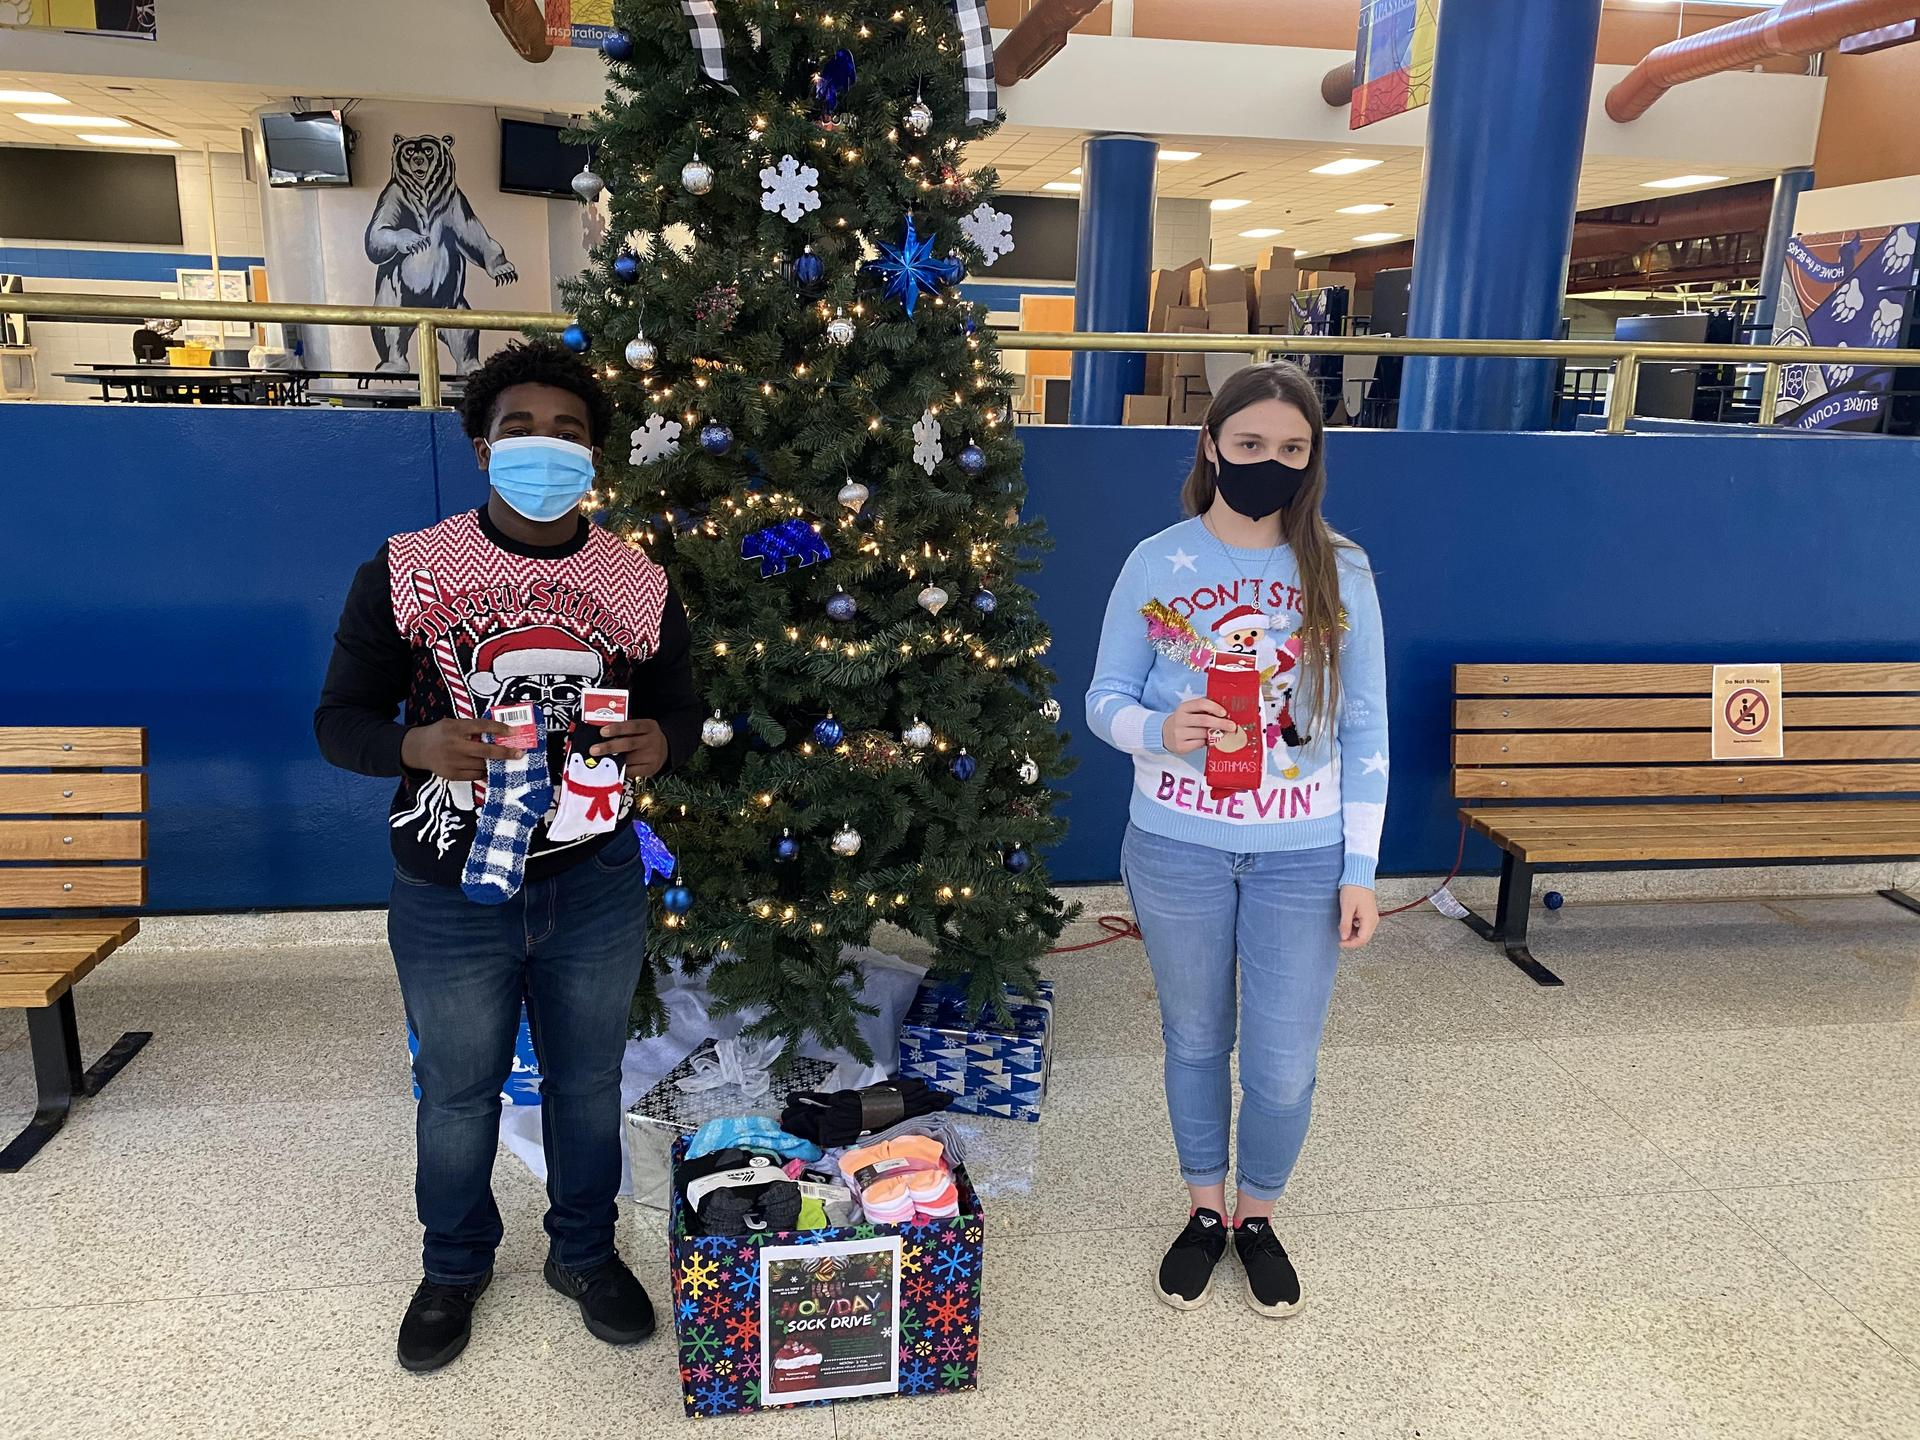 2 IB students standing by a Christmas tree holding socks.